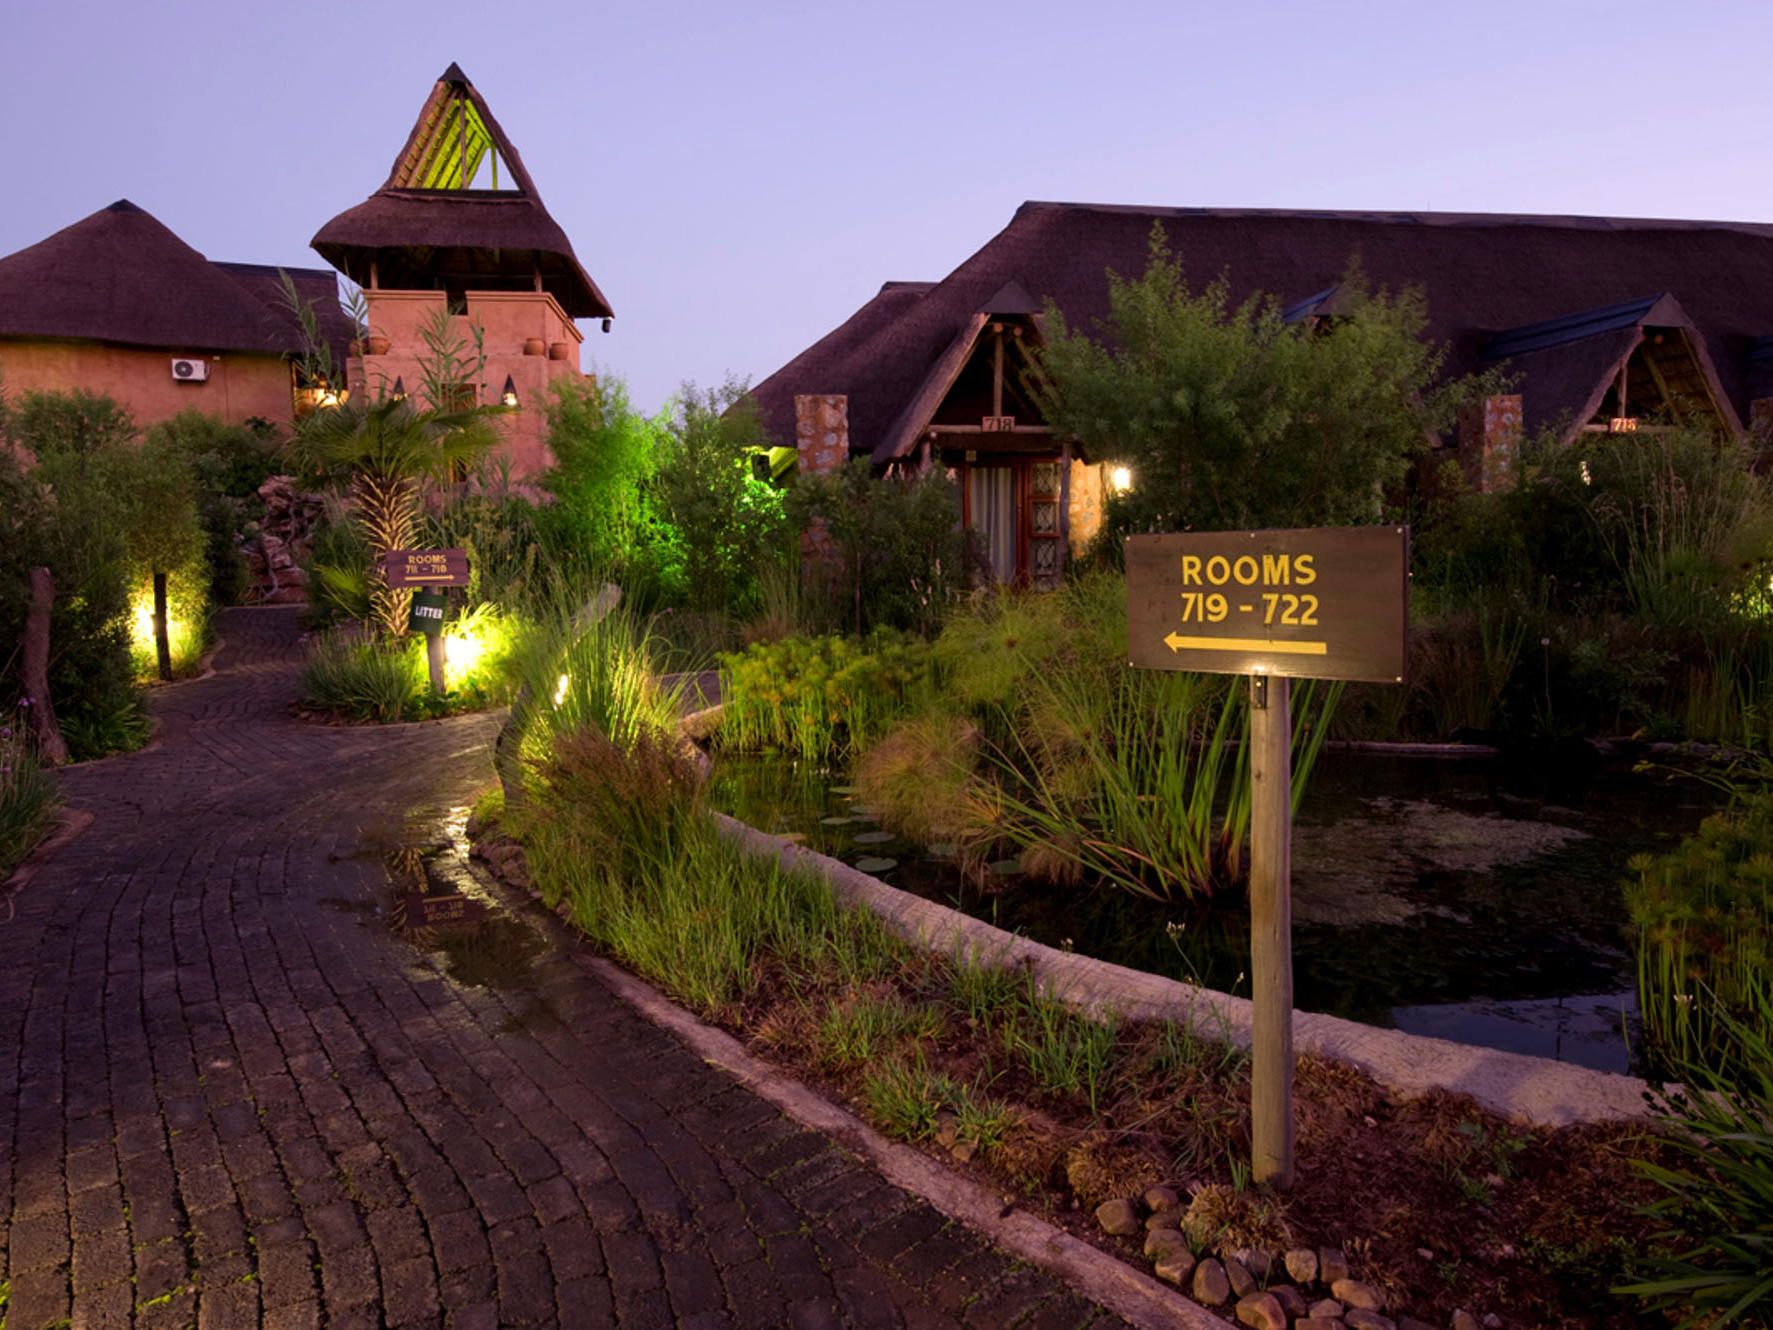 Landscape of path leading to rooms at dusk